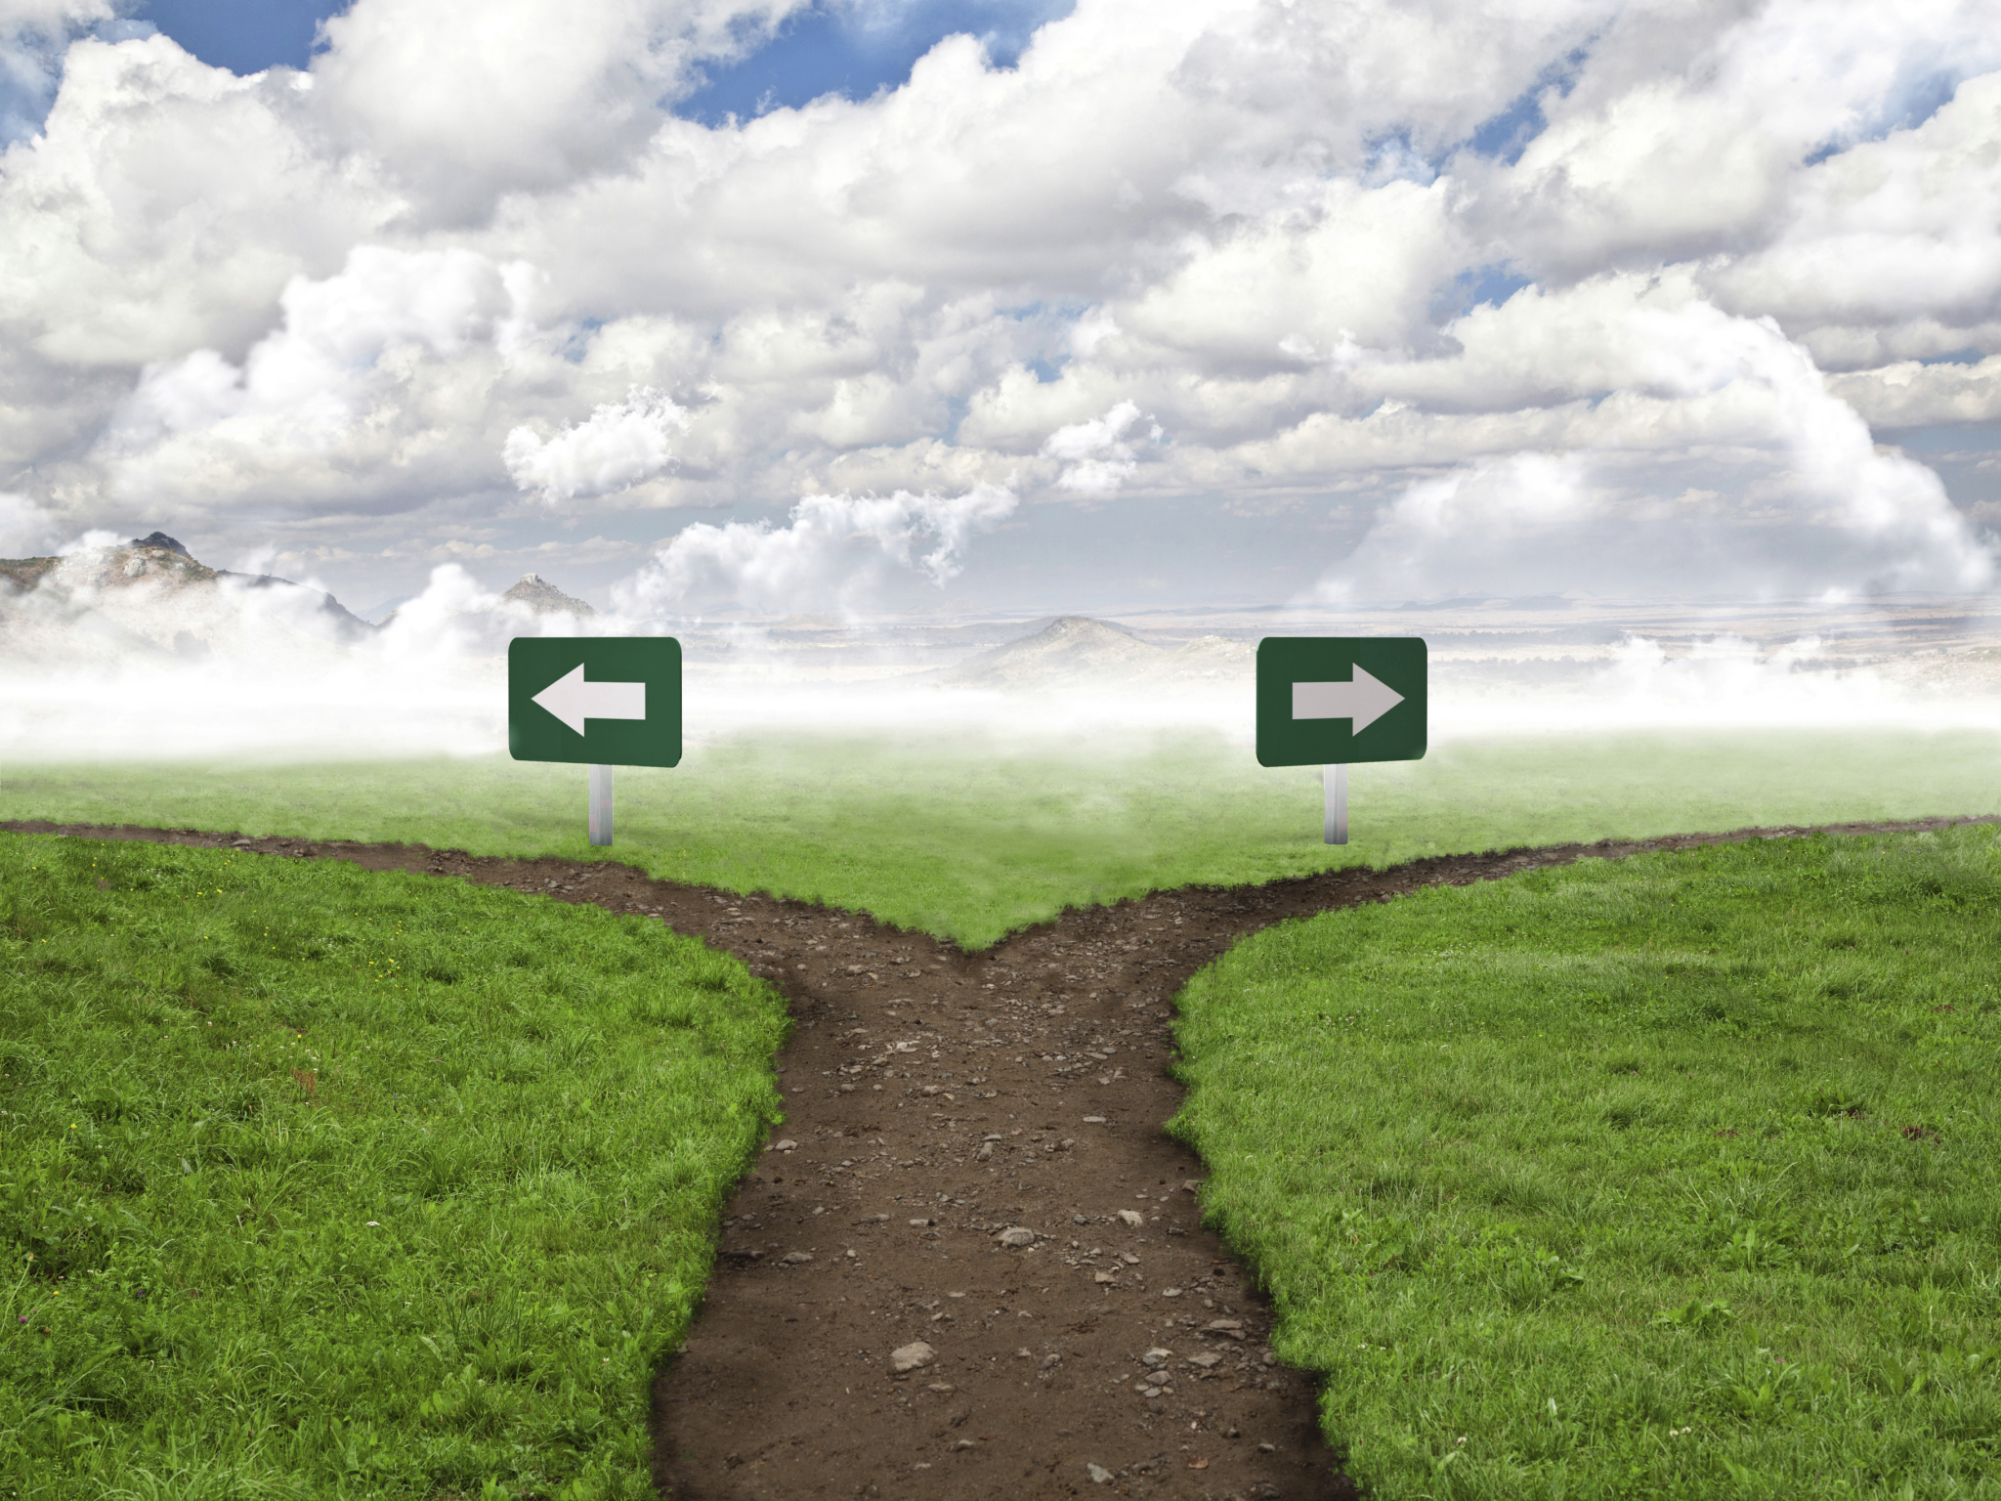 5 Stories of Split Paths - Riveted